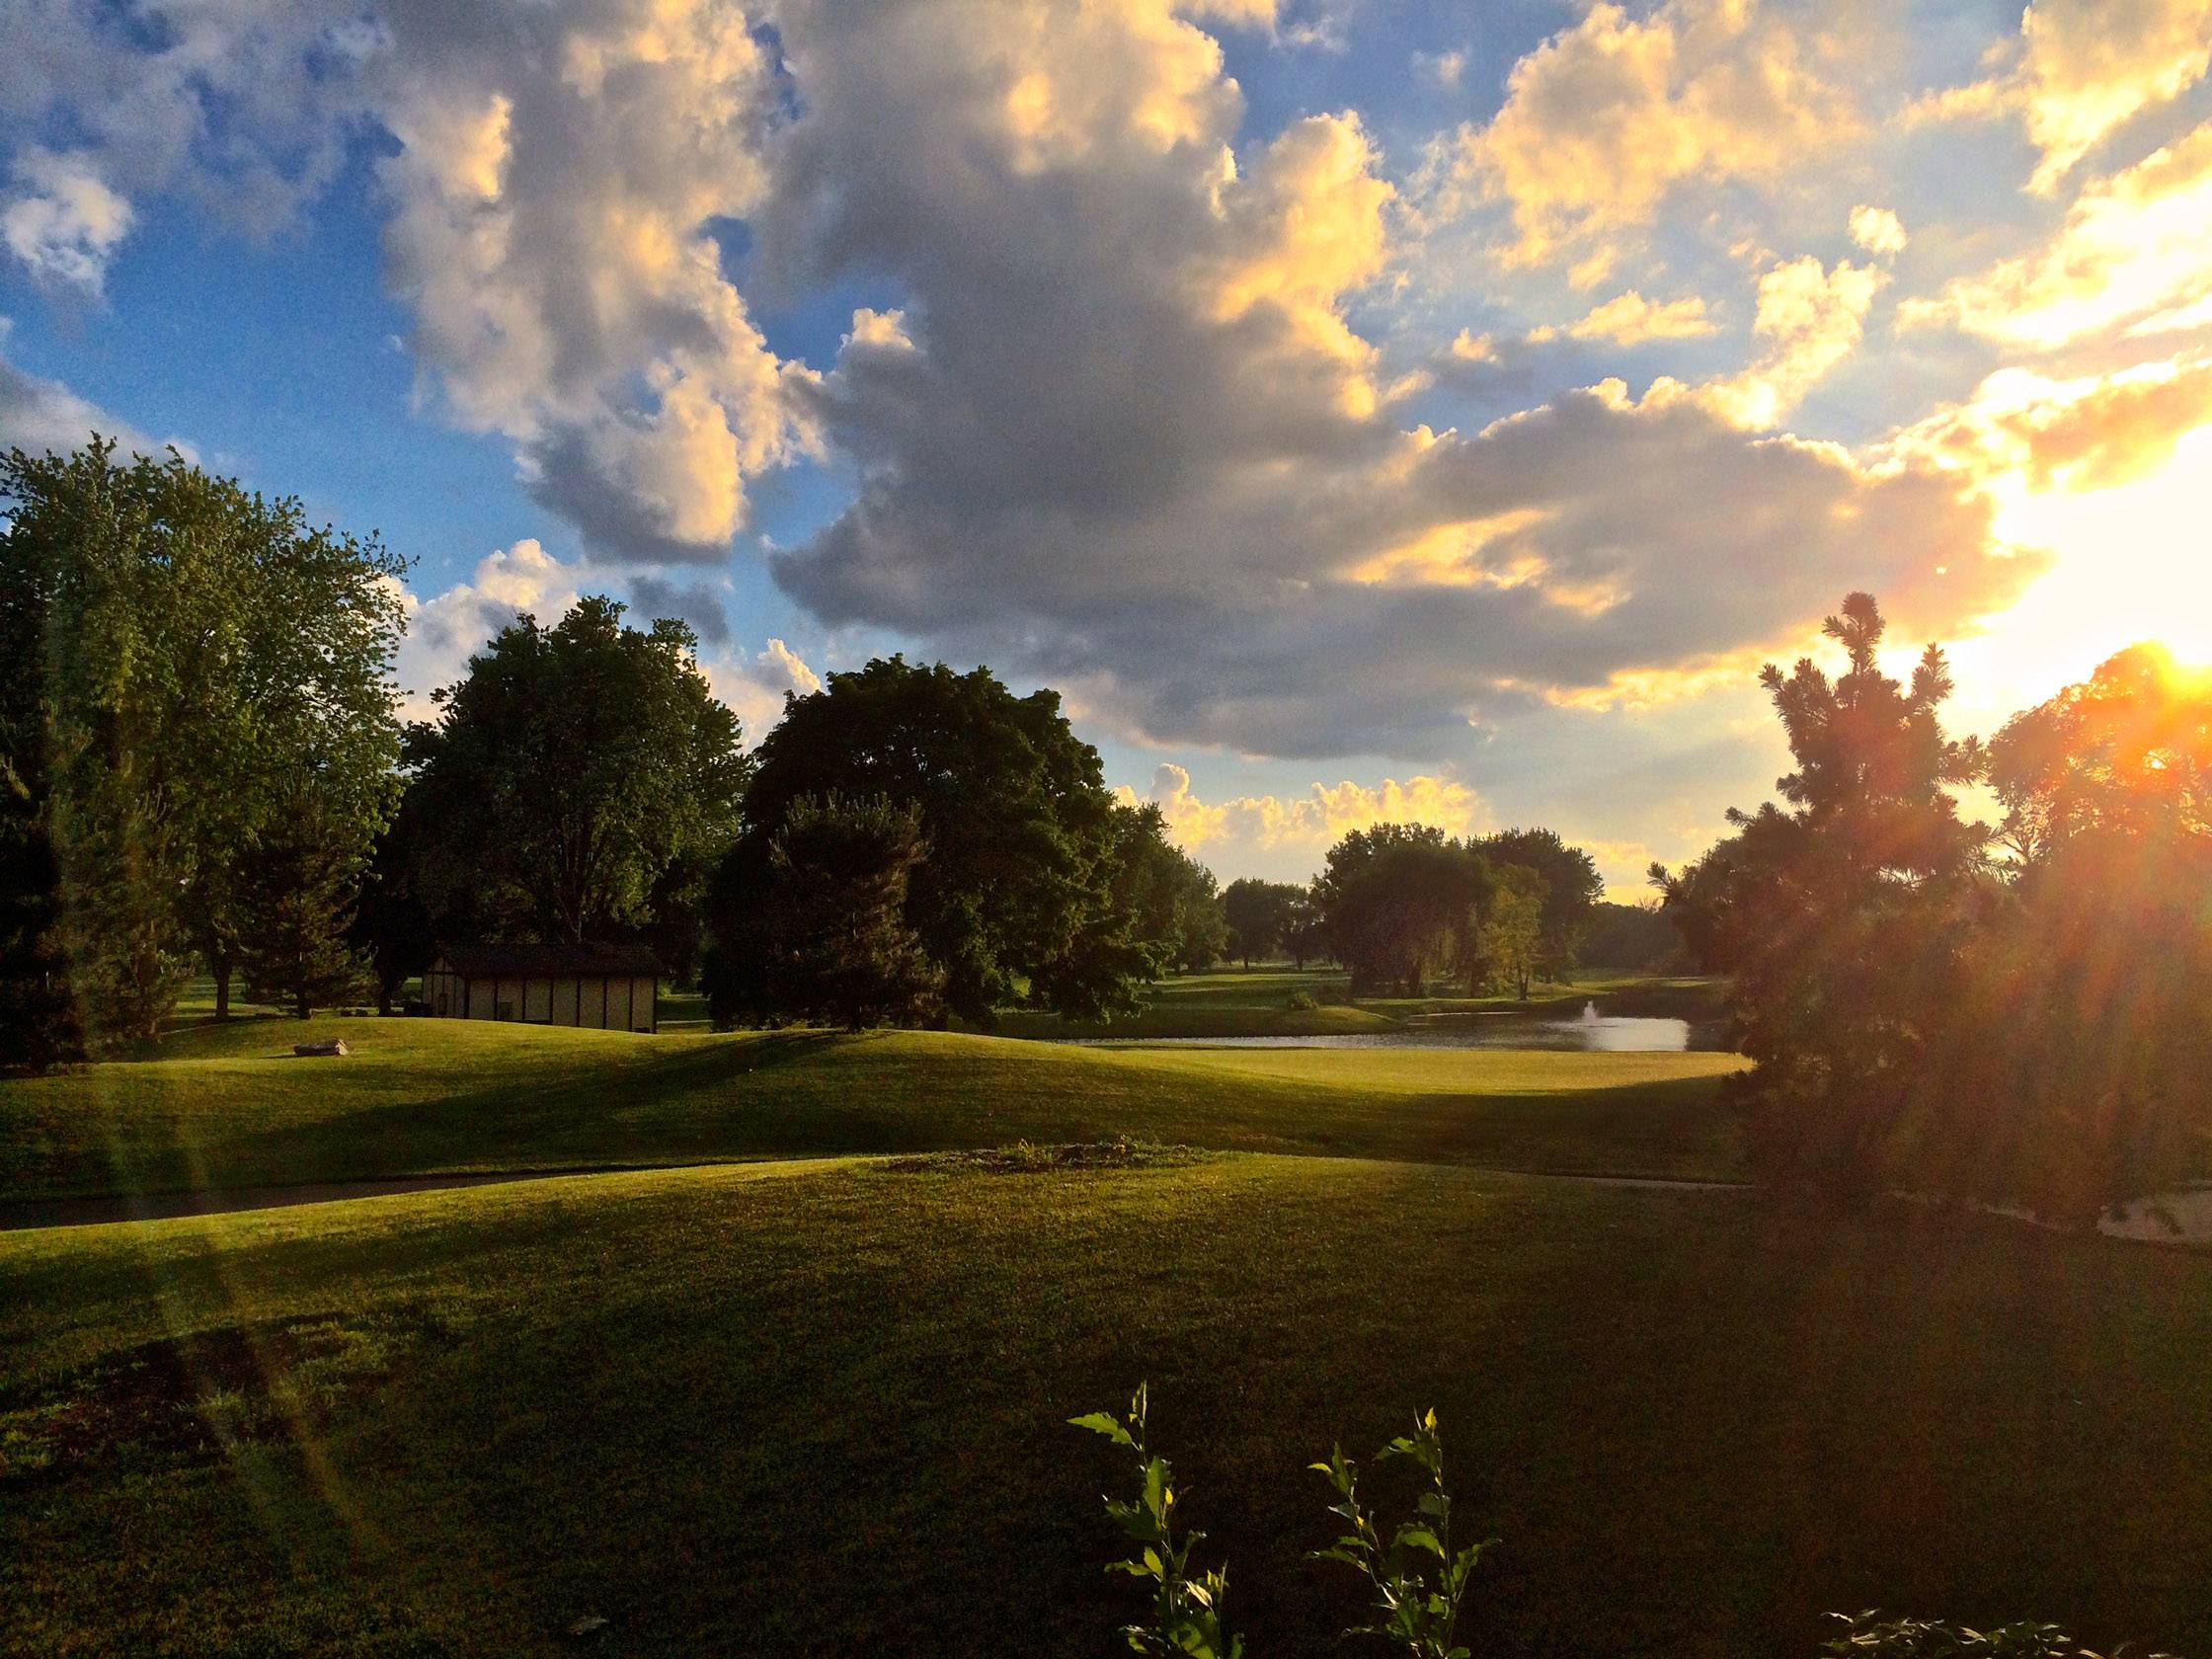 The sun sets on the golf course after a wedding at the Chevy Chase Golf Club in Wheeling last month.